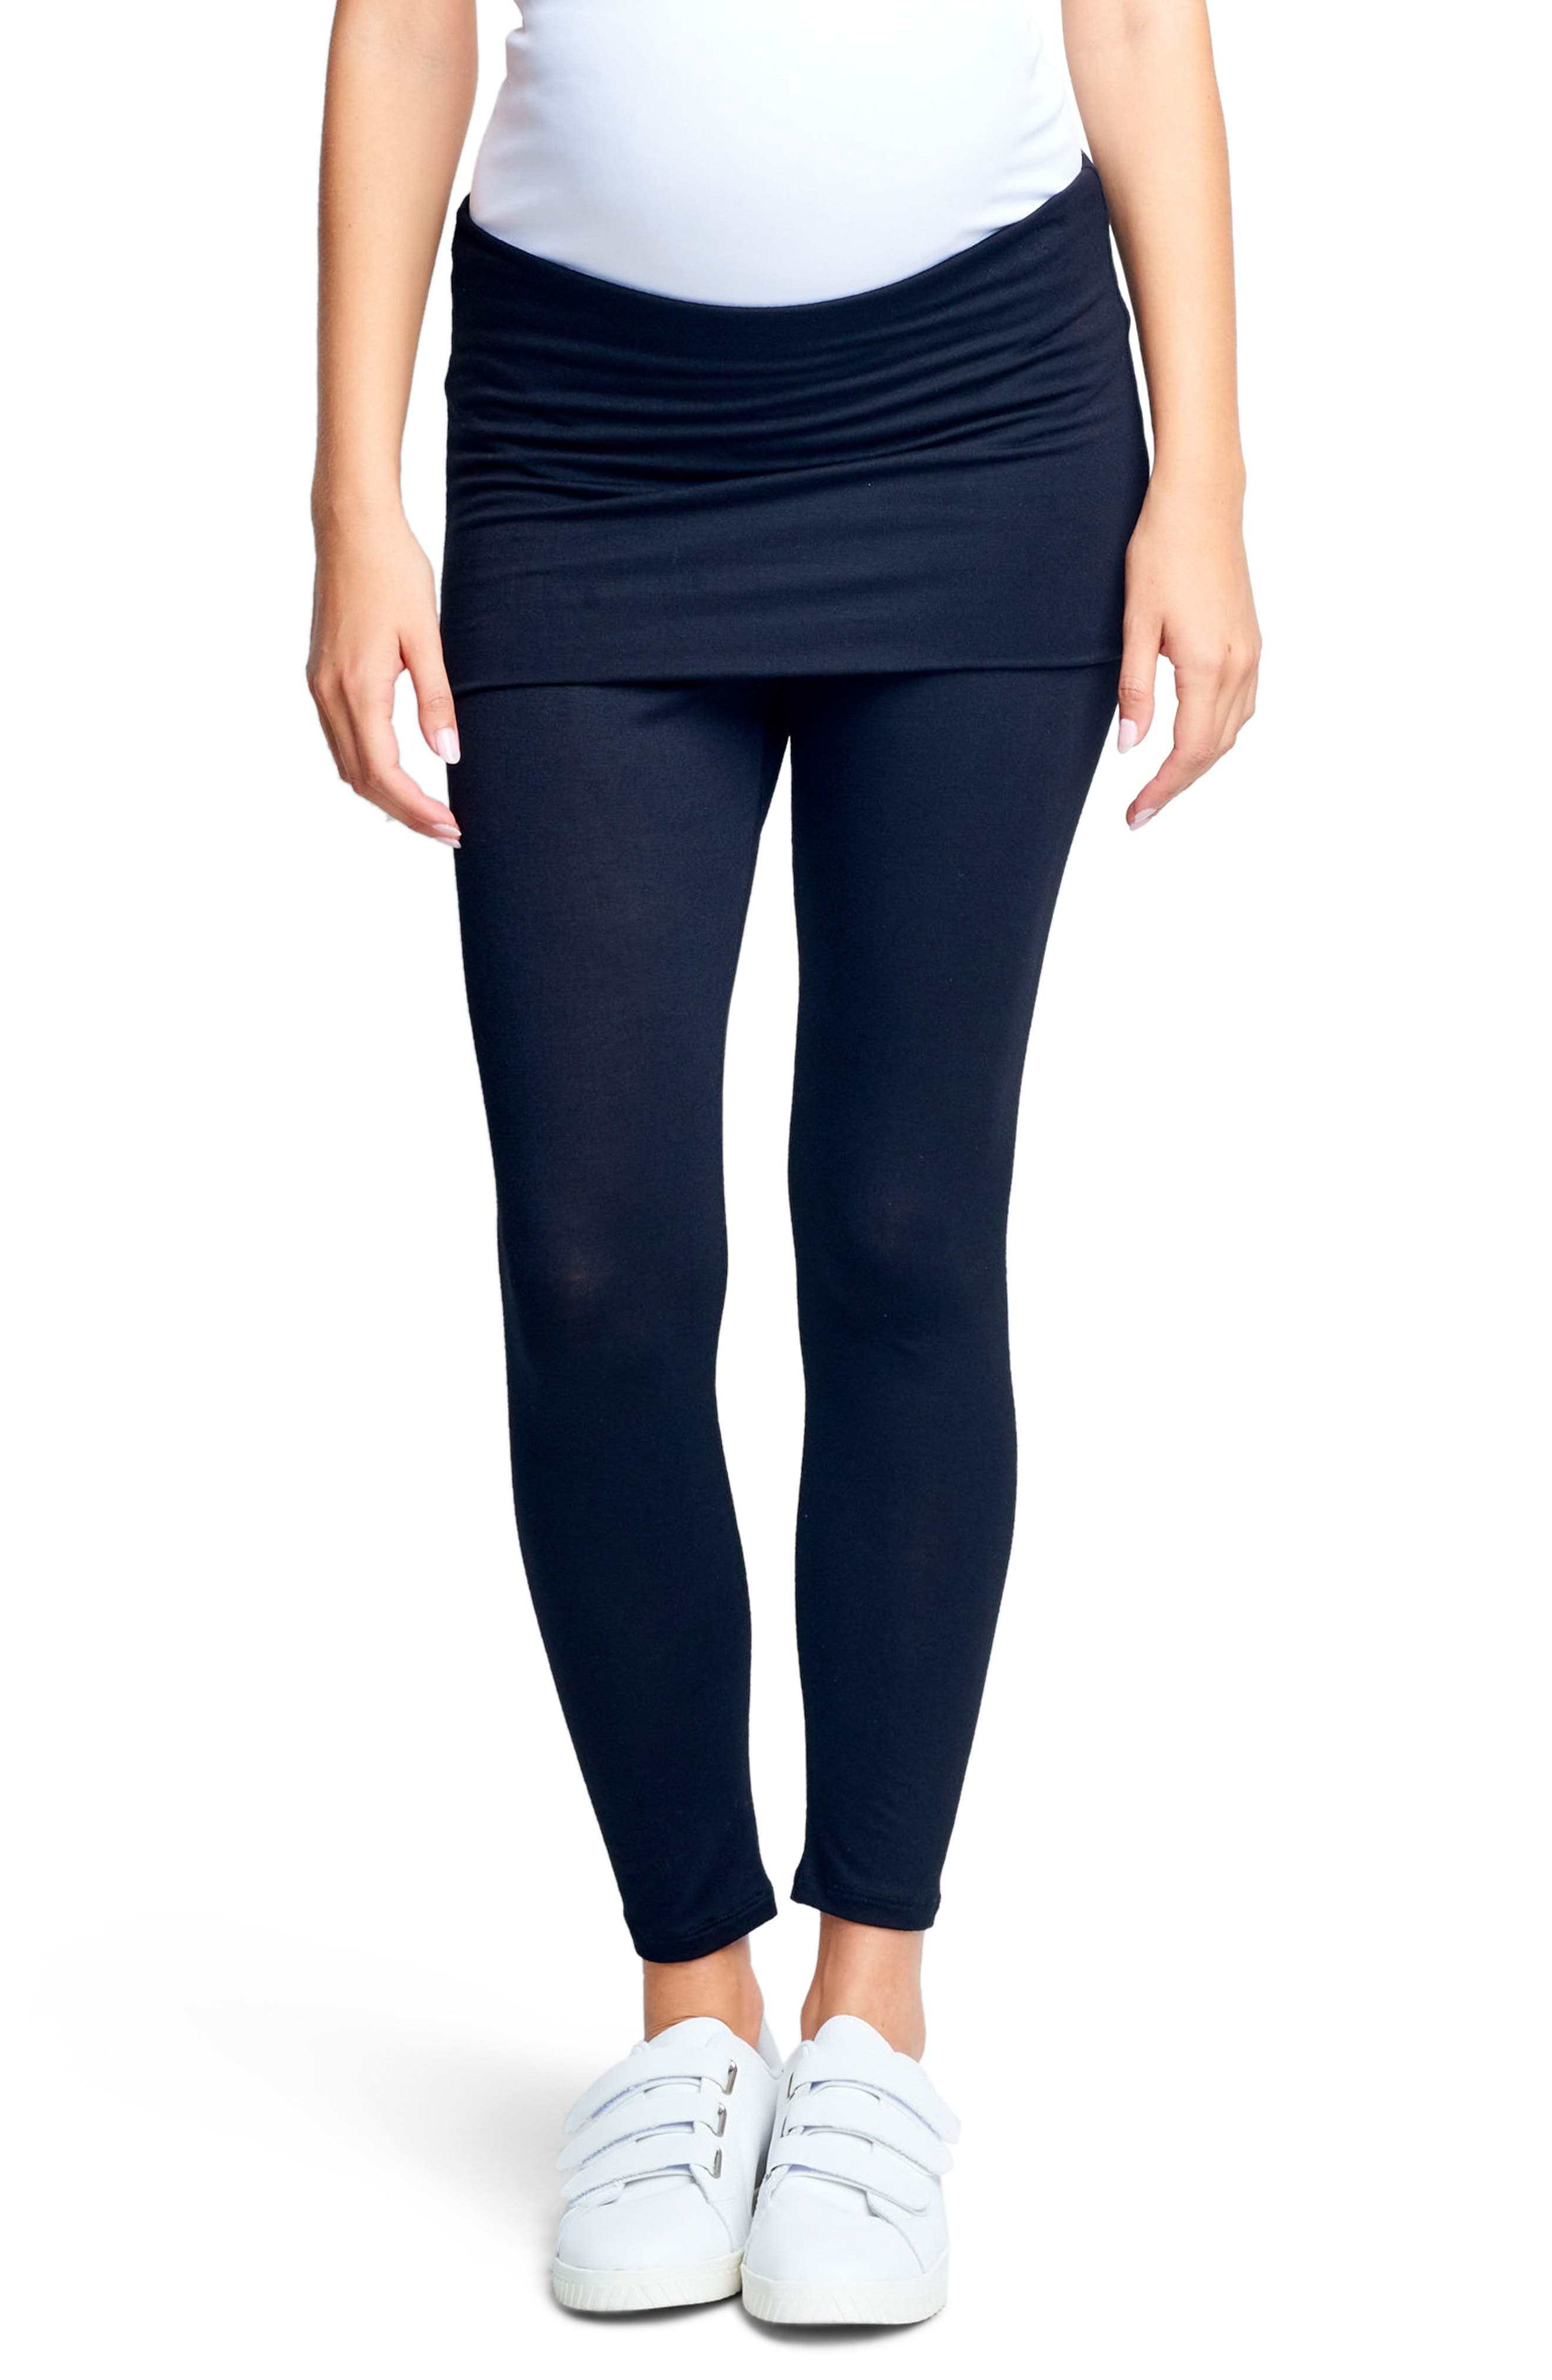 MATERNAL AMERICA Belly Support Maternity Leggings, Main, color, BLACK